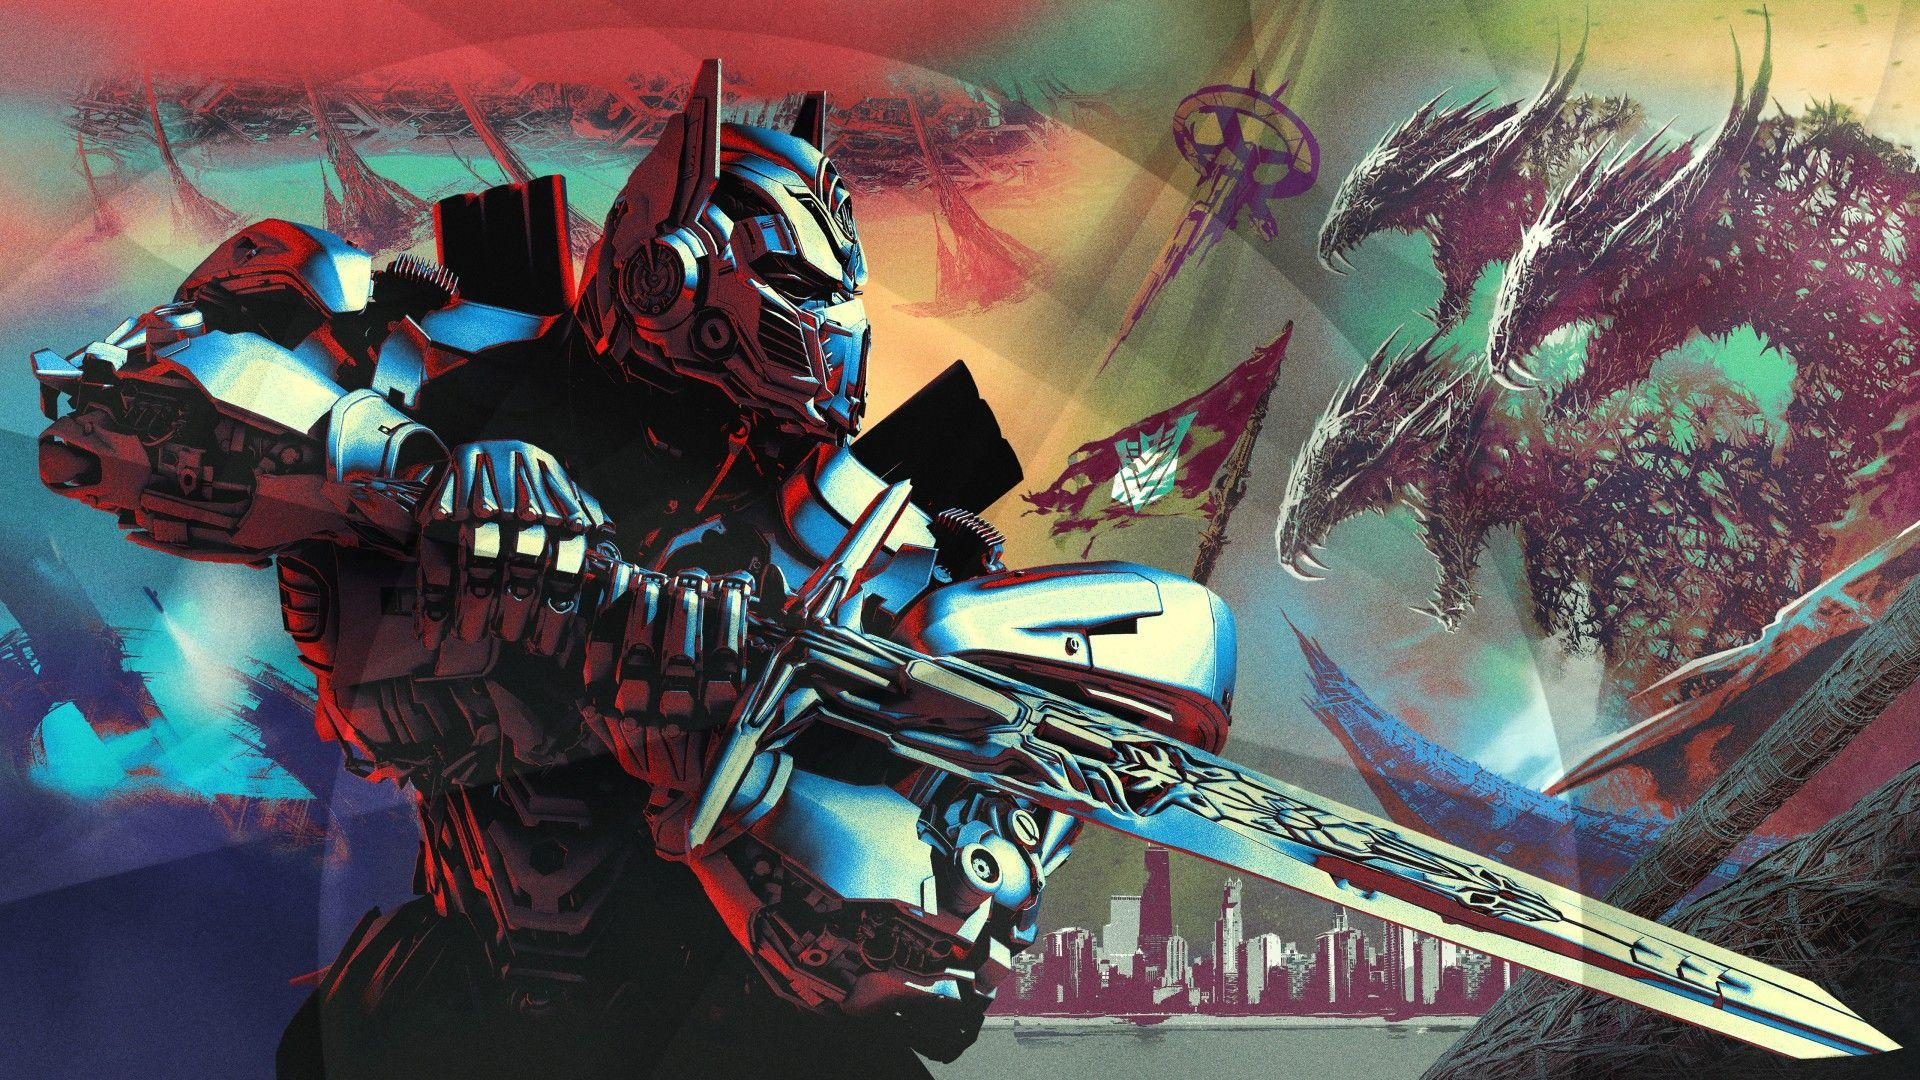 Wallpapers Optimus Prime, Transformers: The Last Knight, 2017